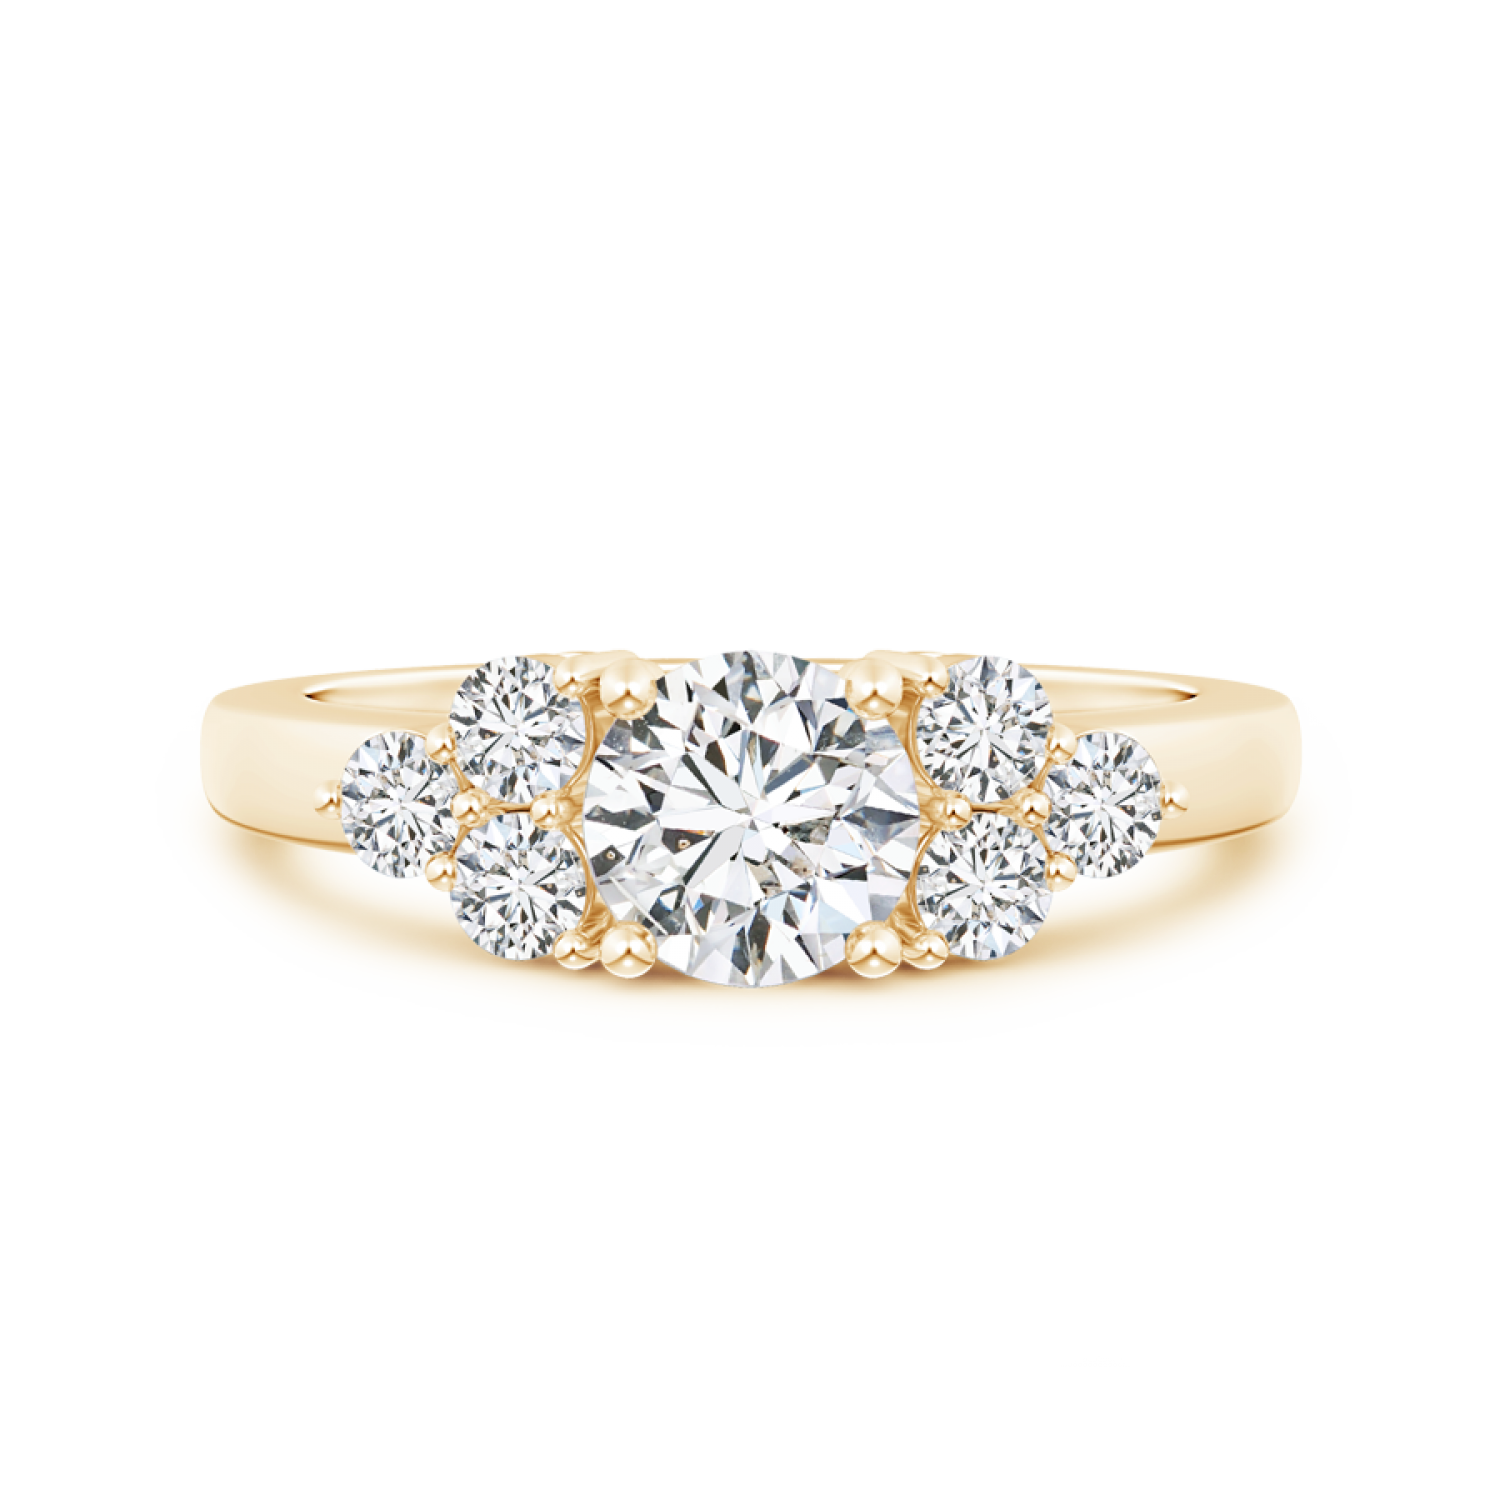 Round Lab Grown Diamond Solitaire Ring With Trio Accents - Main Image